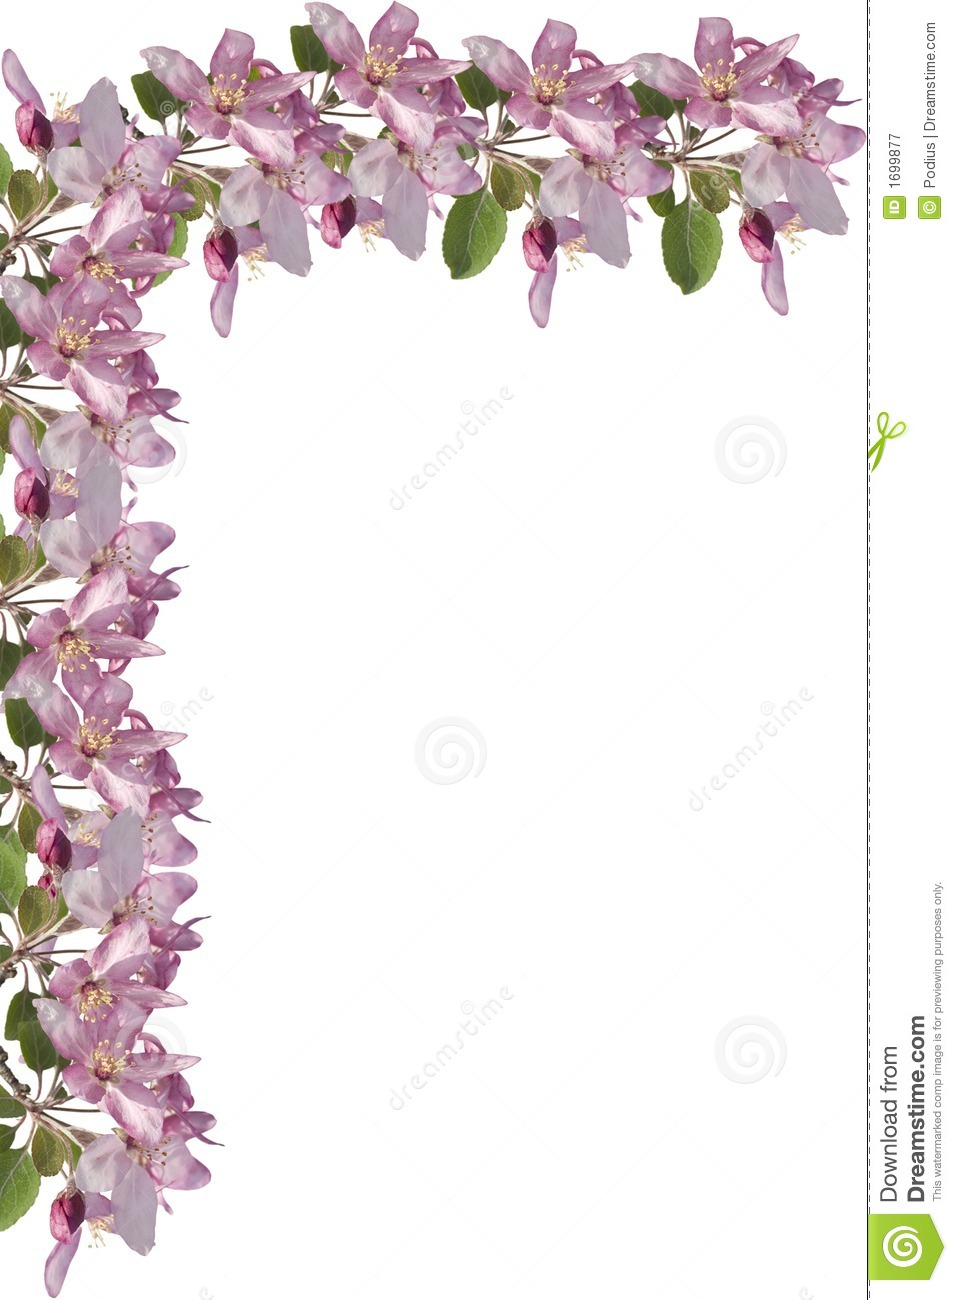 Apple Blossom Border Royalty Free Stock Photography - Image: 1699877